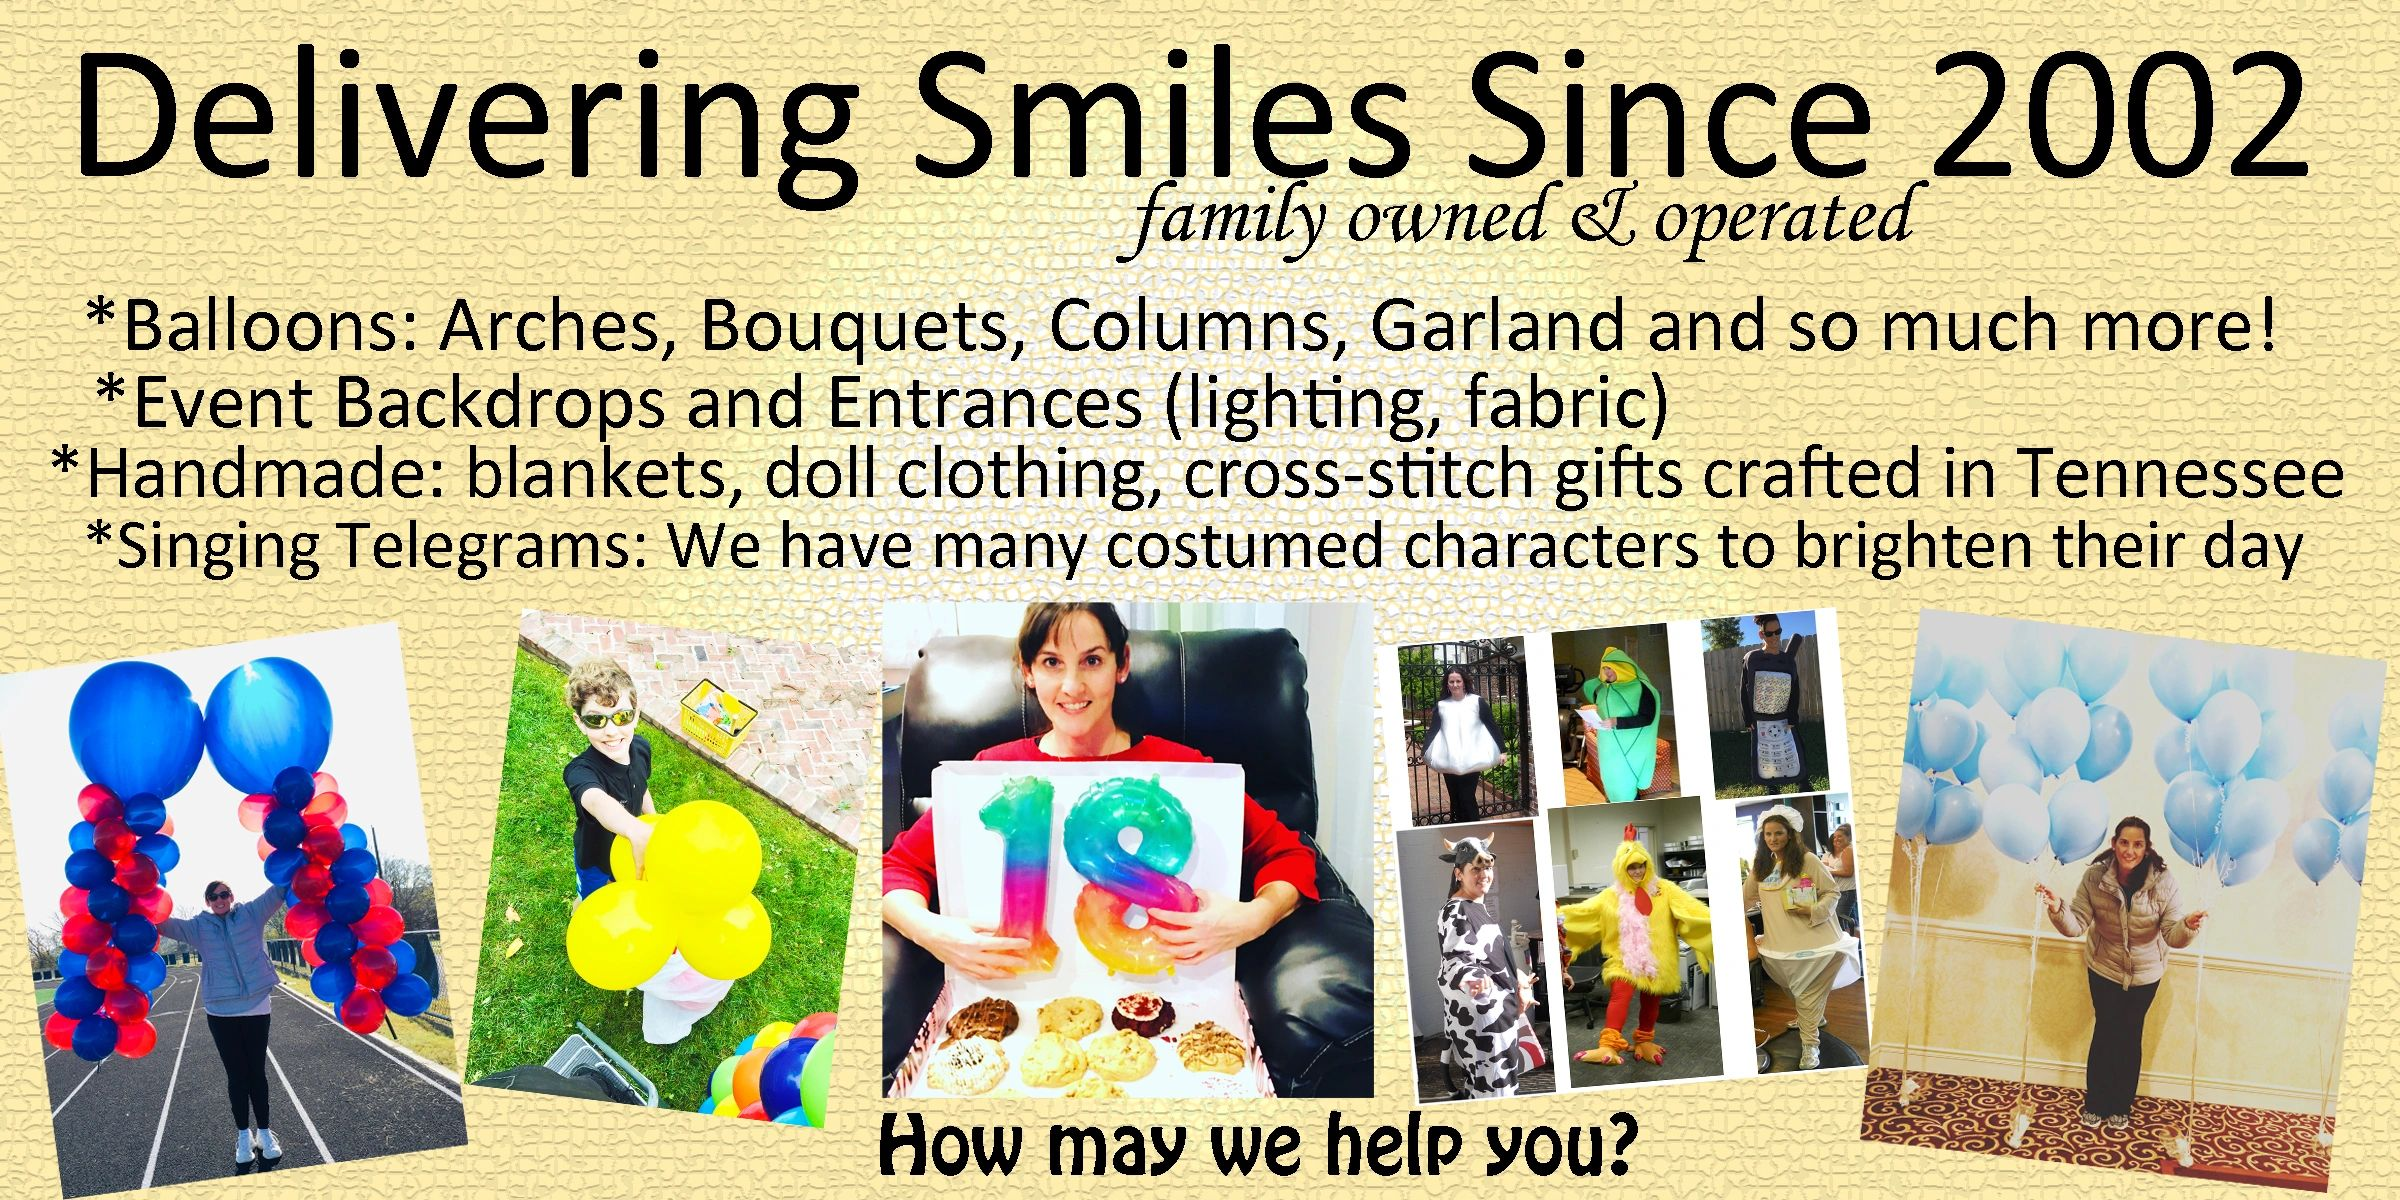 Delivering Smiles with Balloons, Event Backdrops, Handmade Gifts, Singing Telegrams in Nashville, TN